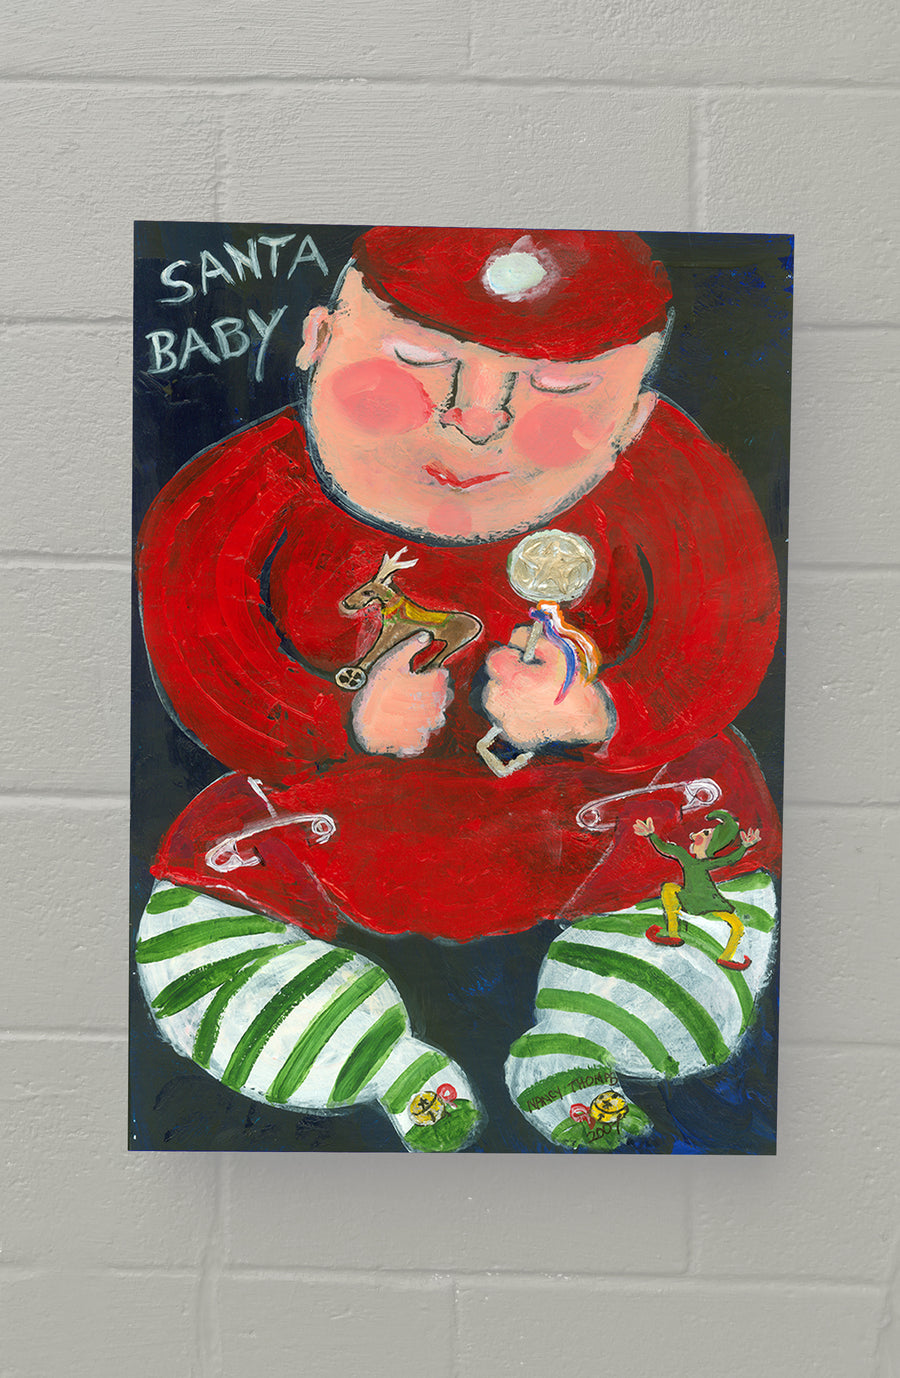 8x11 & 11x14 AVAILABLE NOW! GALLERY GRAND - Santa Baby